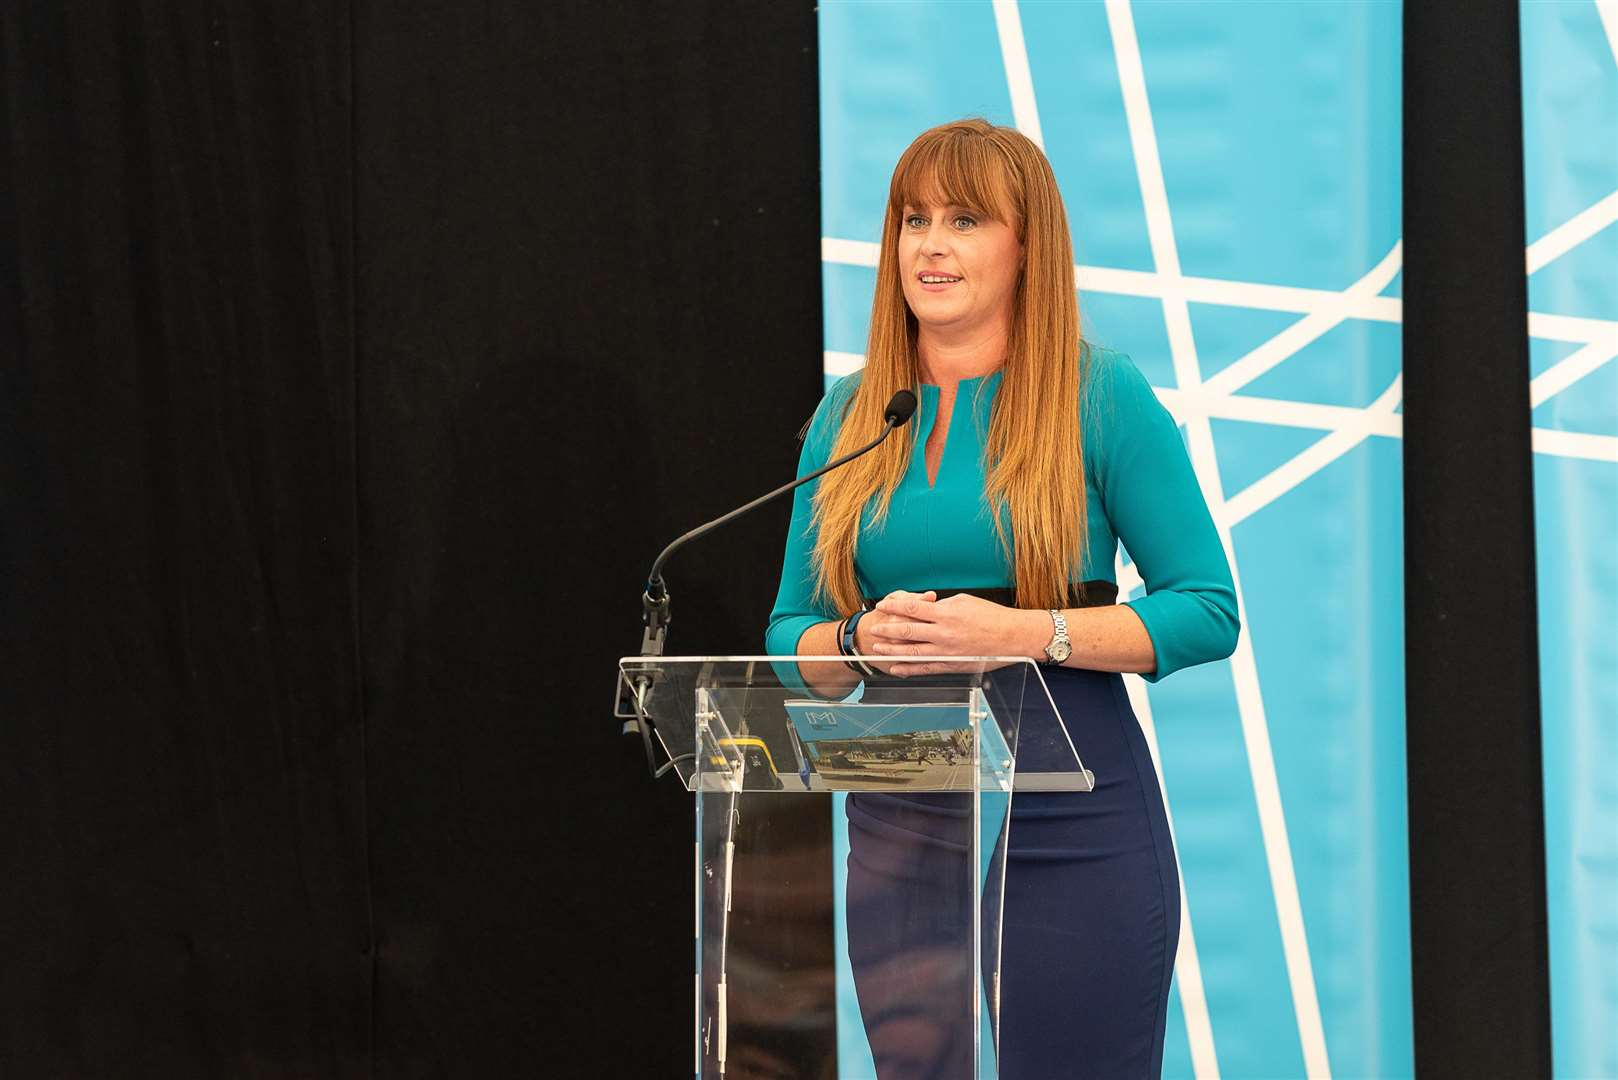 Kelly Tolhurst MP is supporting Small Business Saturday which takes place on December 1